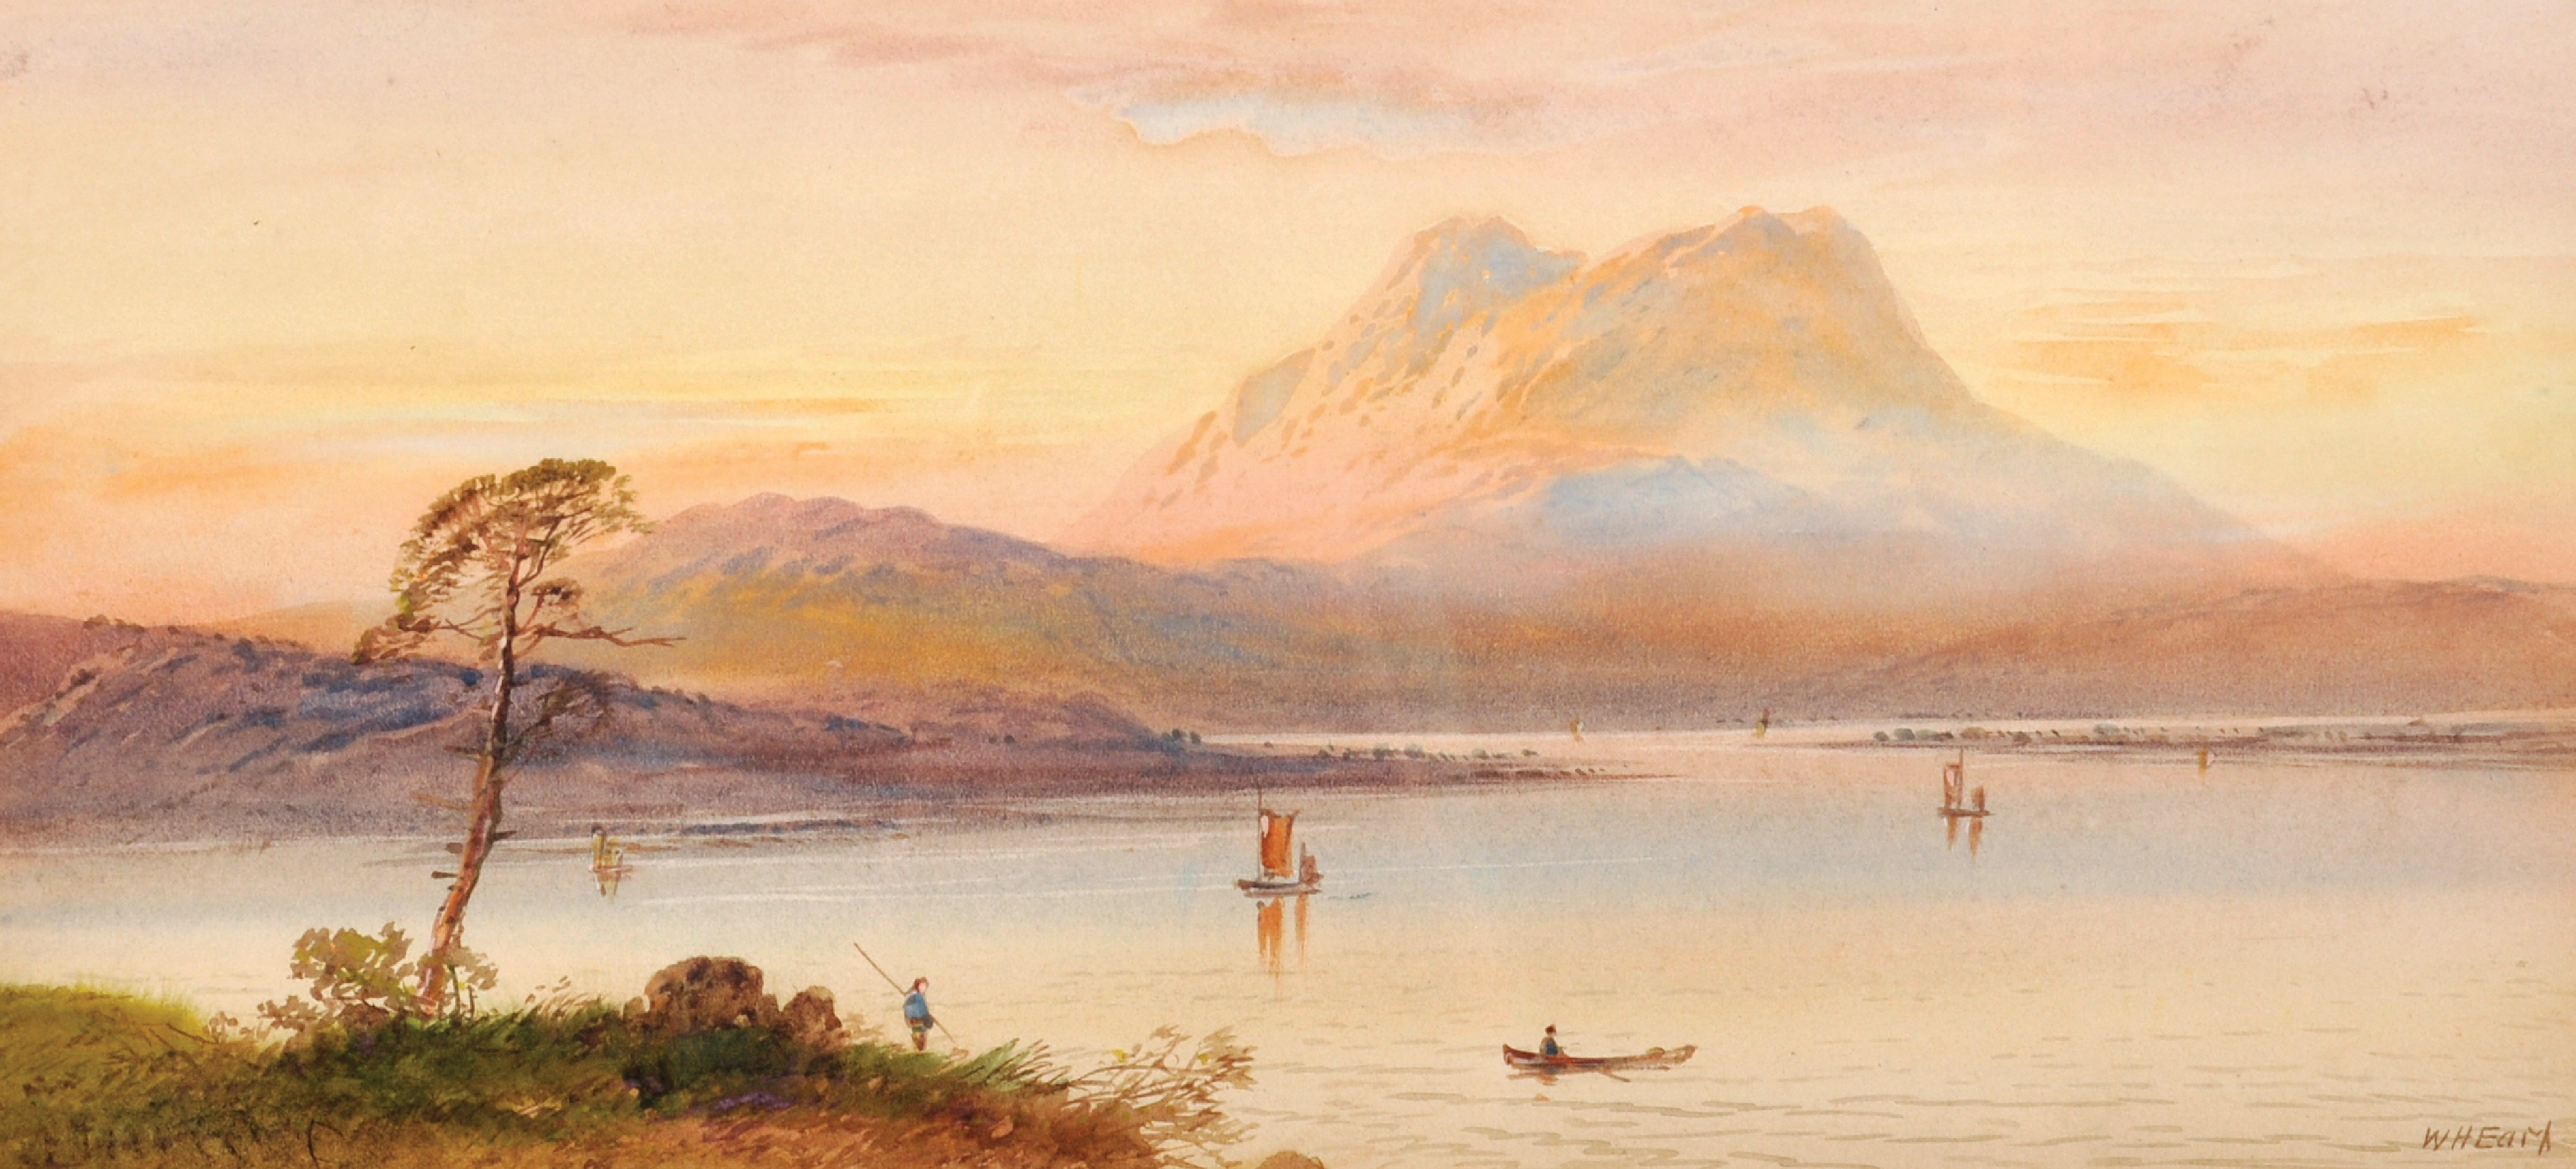 """William Henry Earp (1833- ) British. A Mountainous River Landscape, Watercolour, Signed, 10"""" x 21. - Image 2 of 7"""